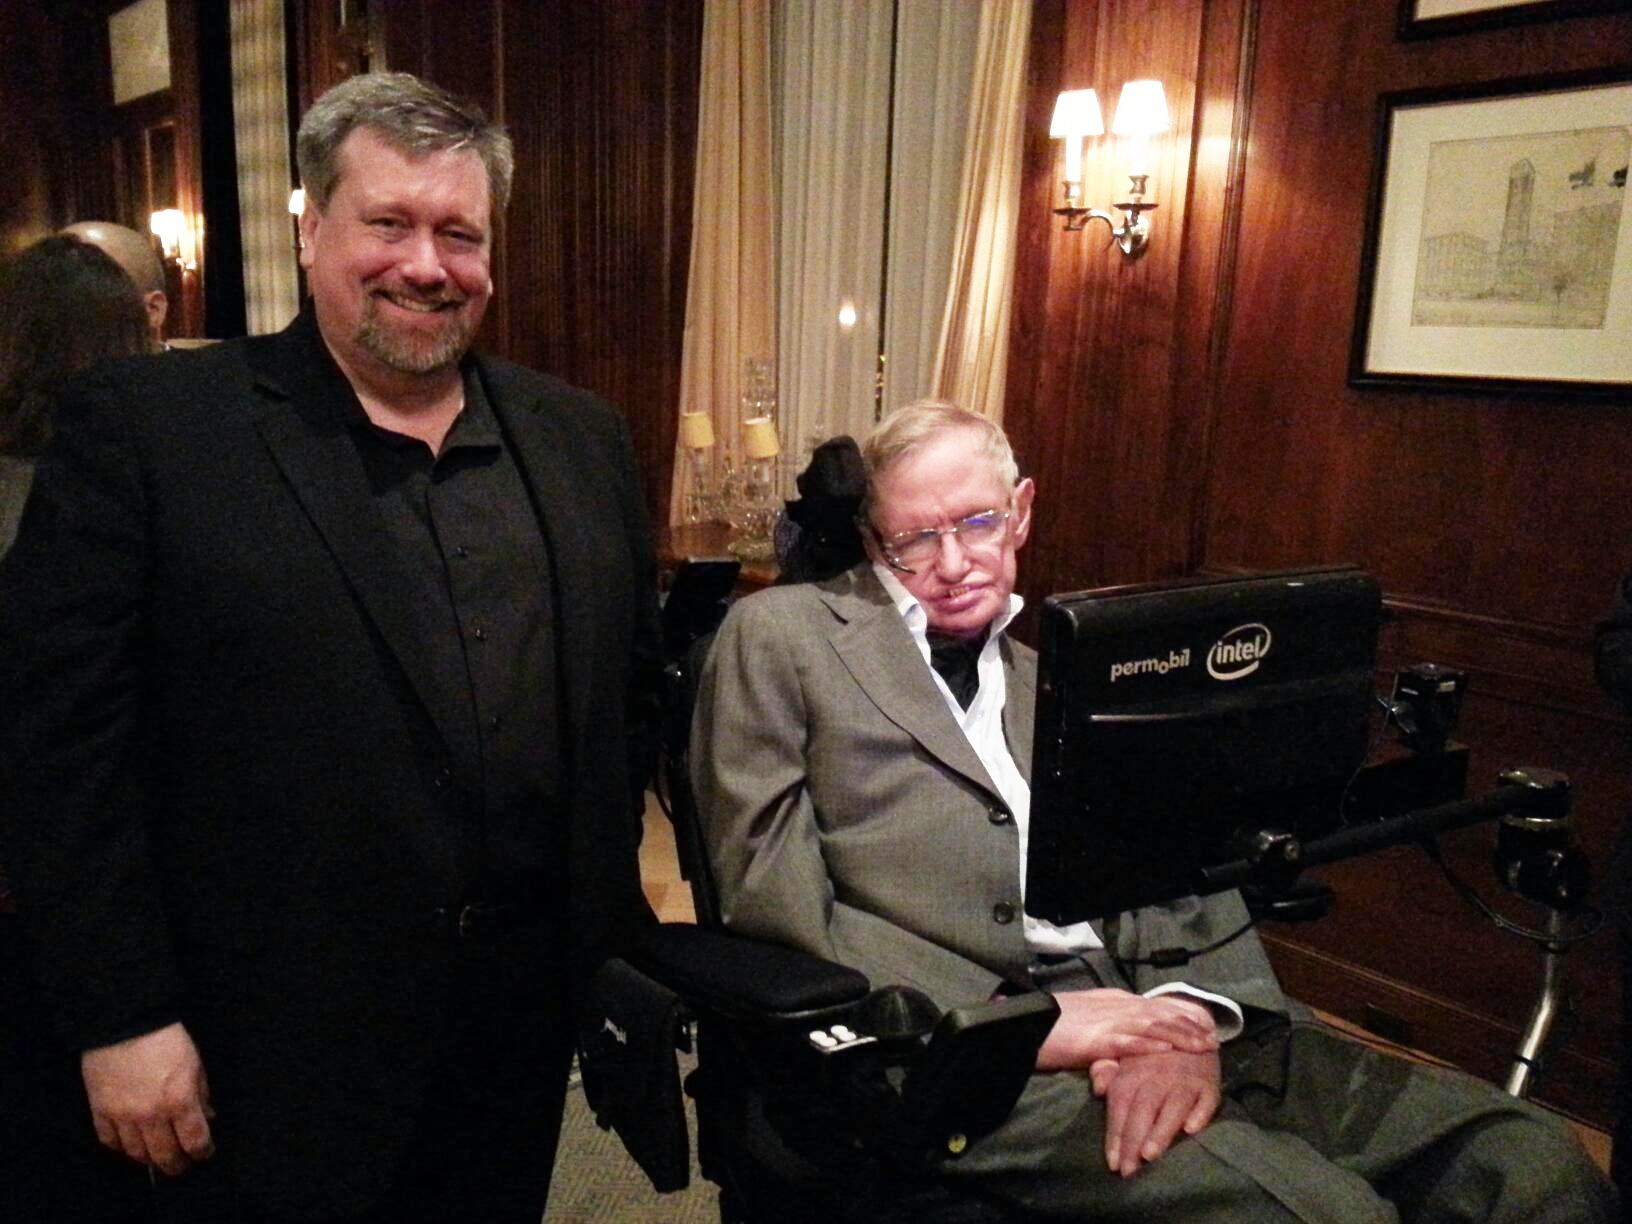 Peck and Hawking